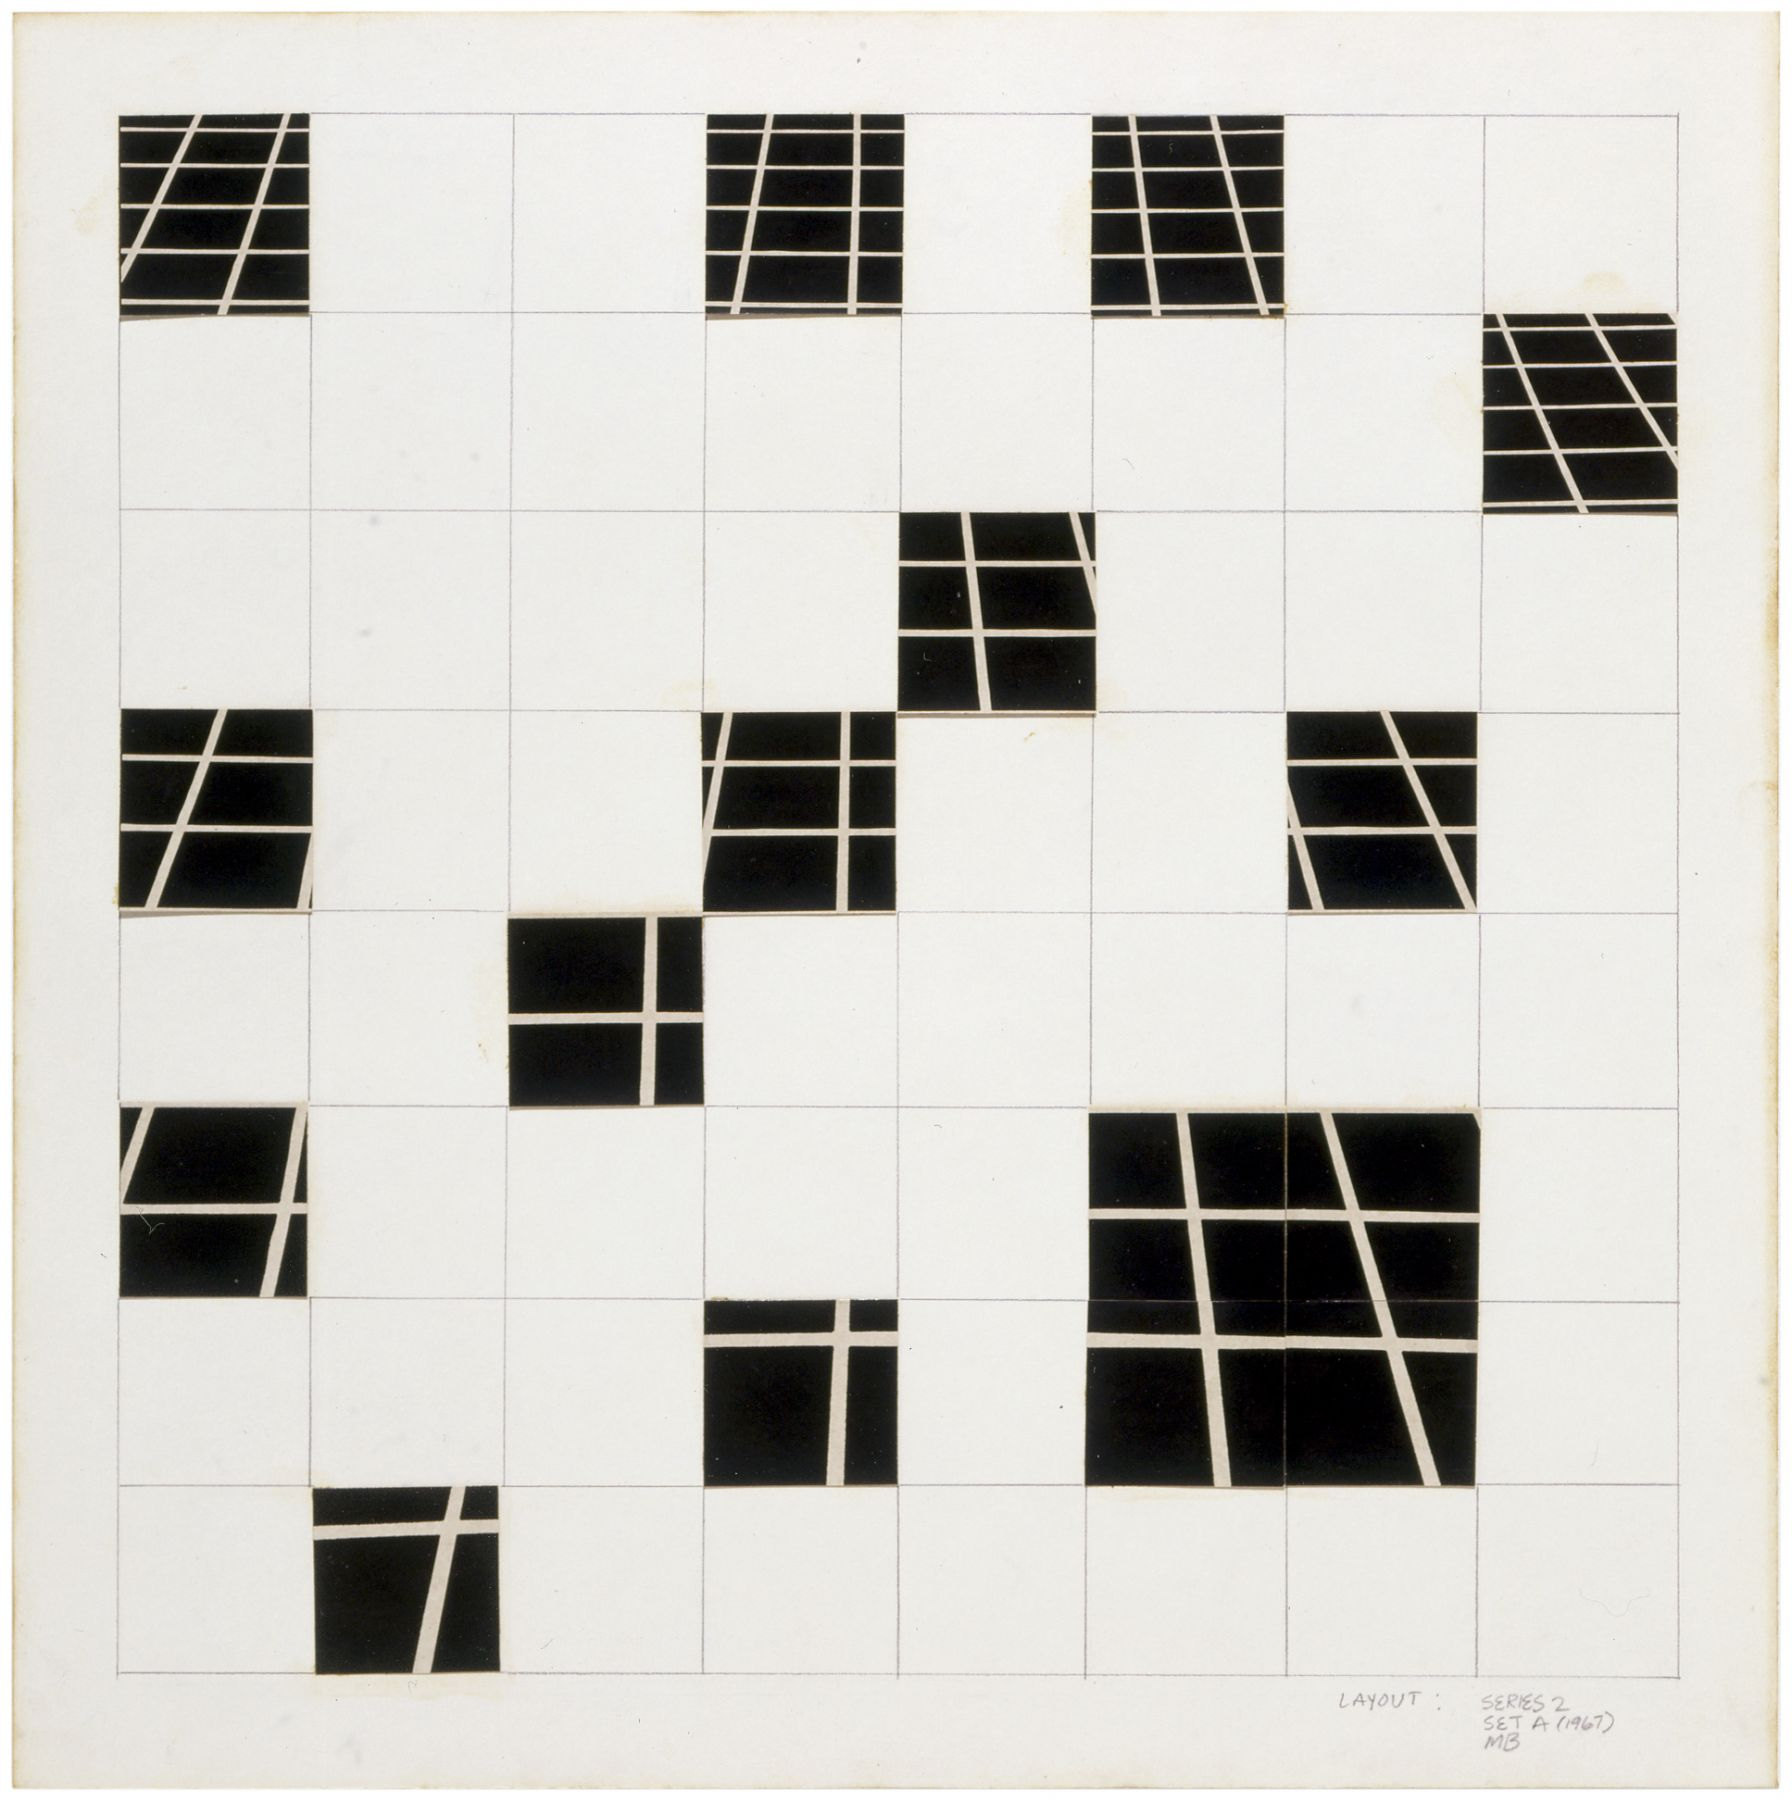 Mel Bochner,Dispersed Perspective (One Point), 1967. Photocollage and pencil on board, 17 x 17 inches.